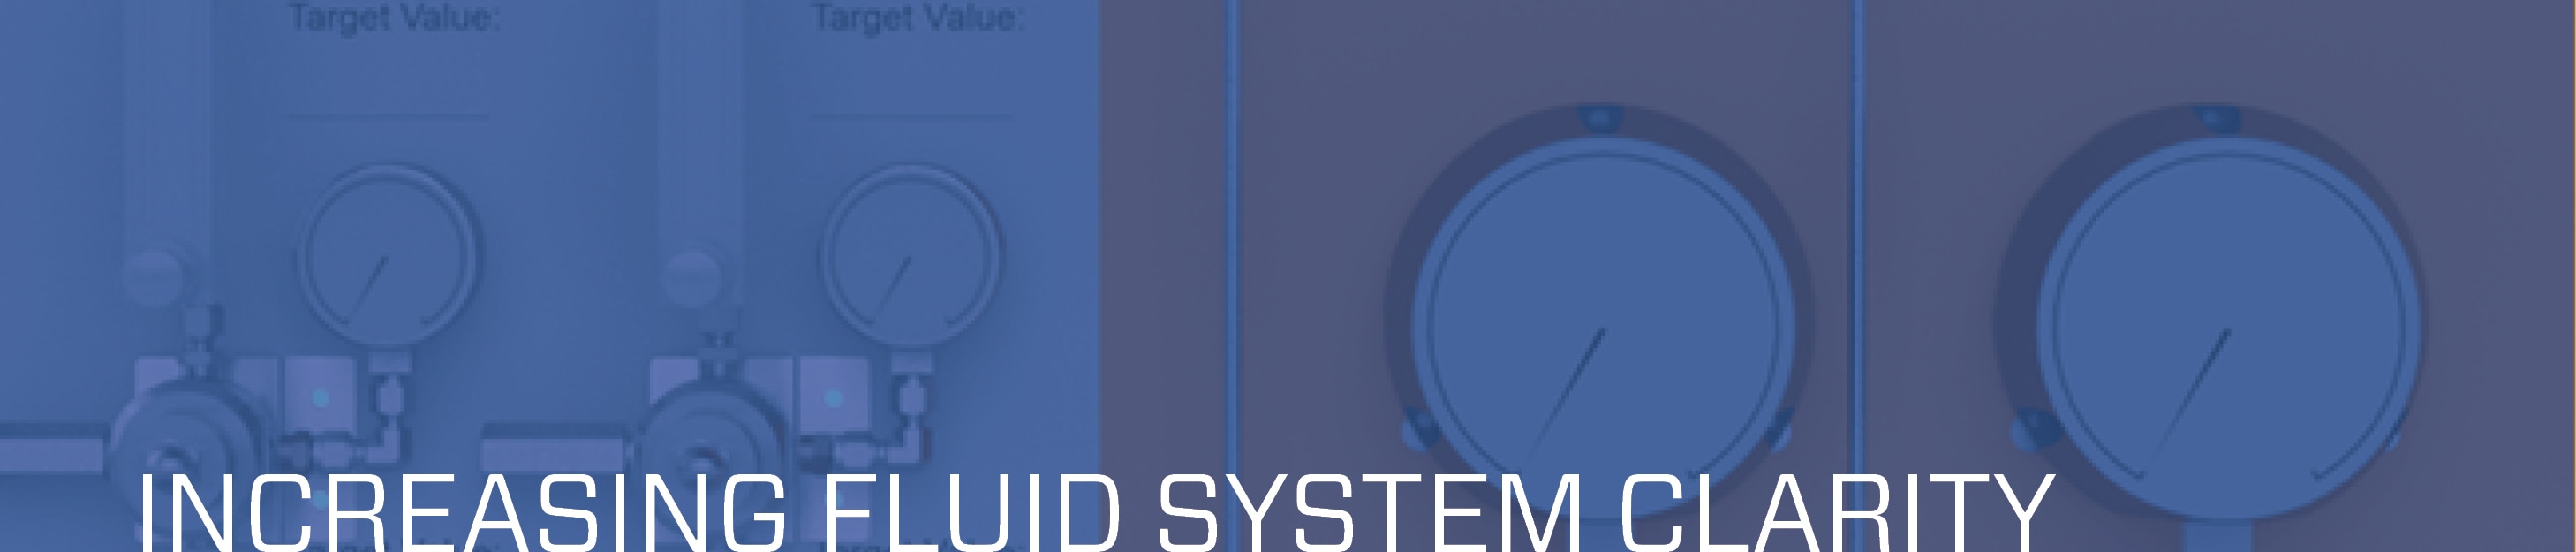 Increasing Fluid System Clarity